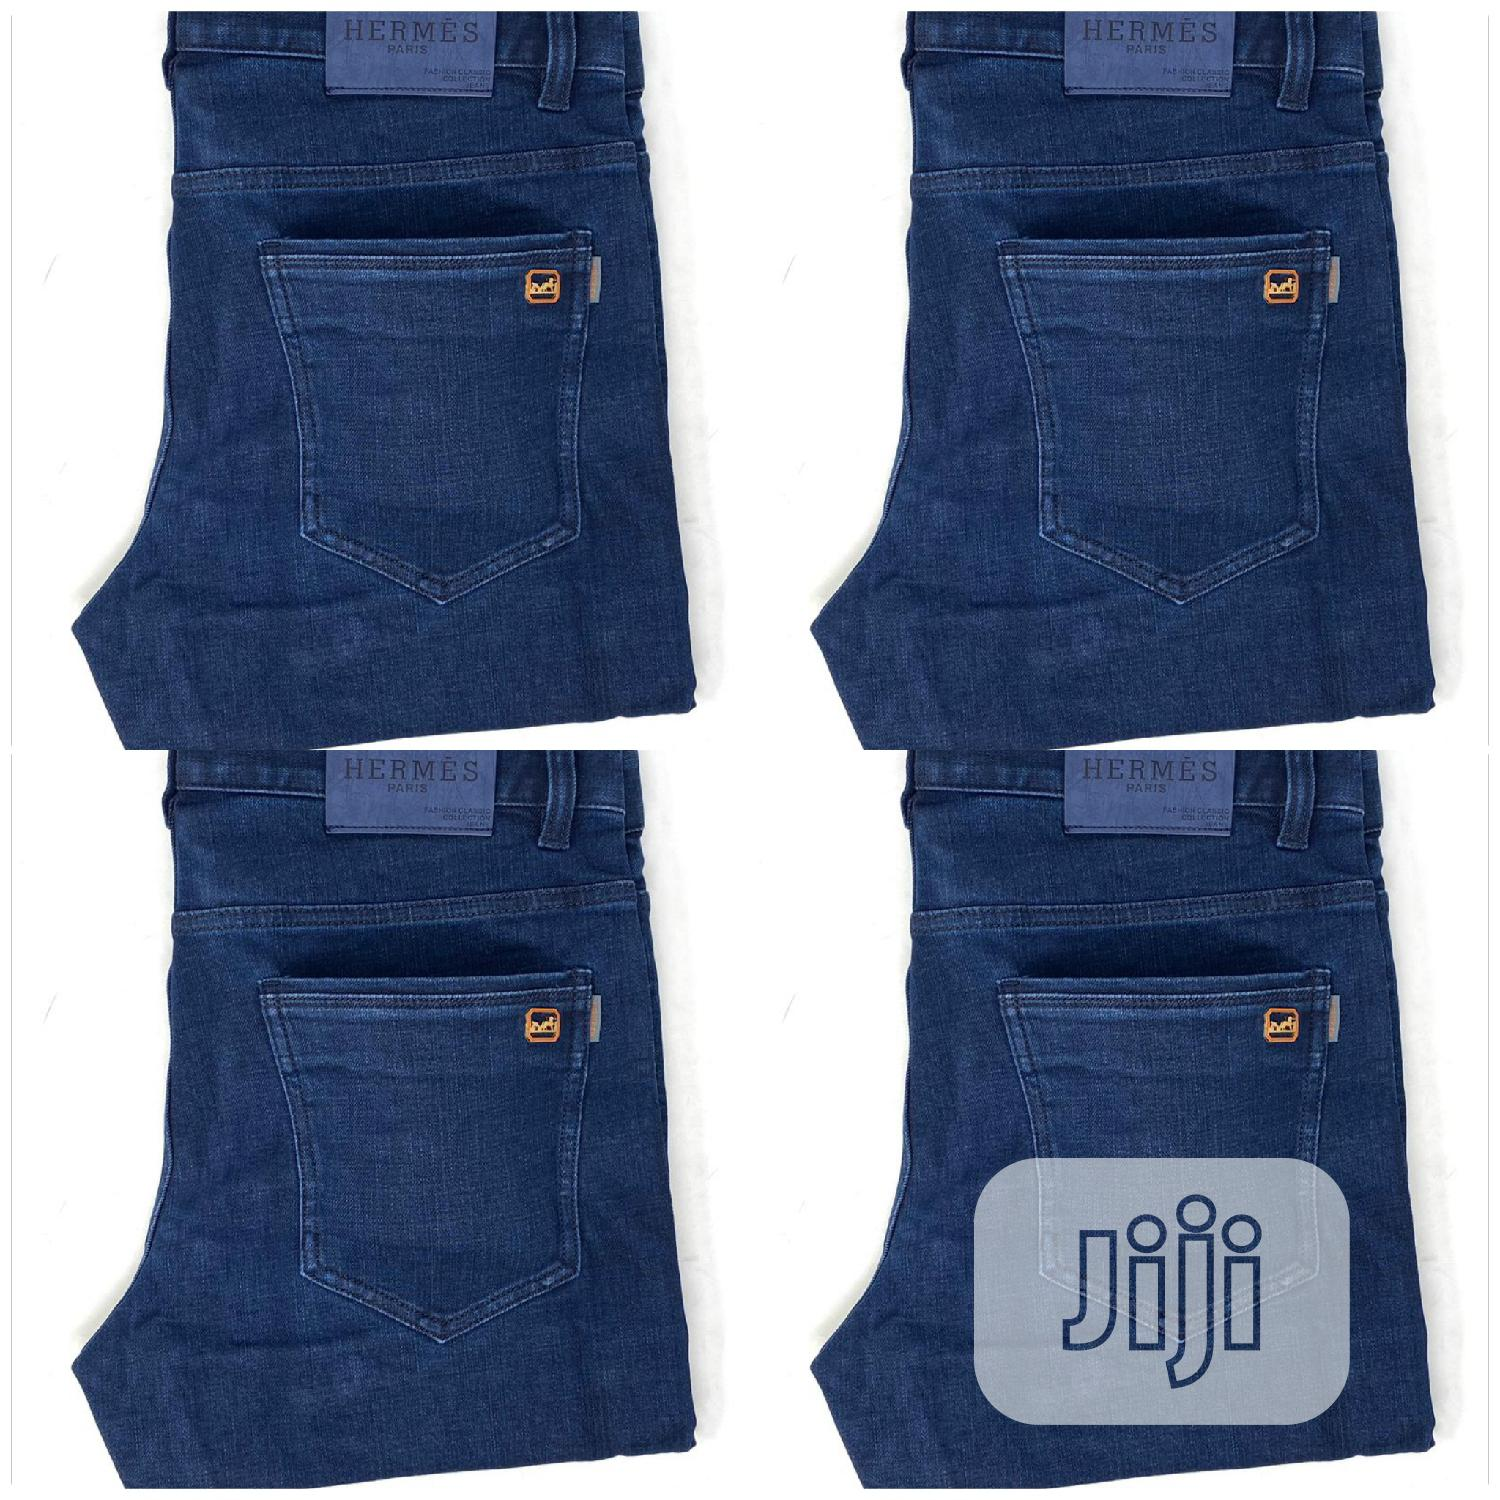 Hermes Navy Blue Jeans Original | Clothing for sale in Surulere, Lagos State, Nigeria